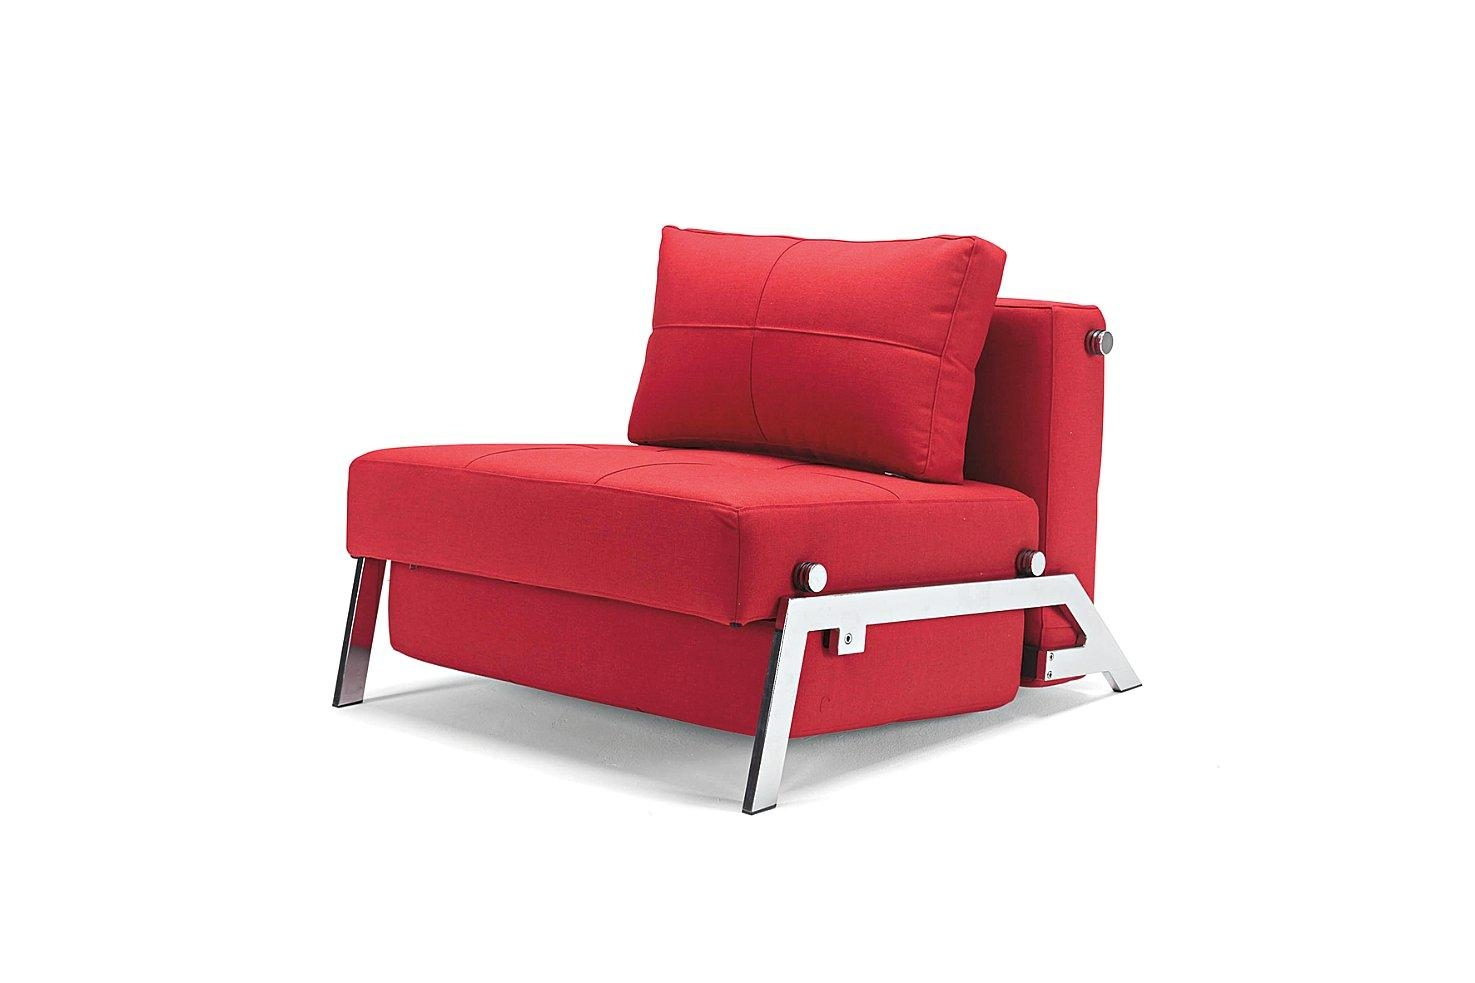 Single Sofa Bed Moblerfurniture Red Color – Lentine Marine | #41995 With Regard To Single Chair Sofa Beds (View 4 of 22)